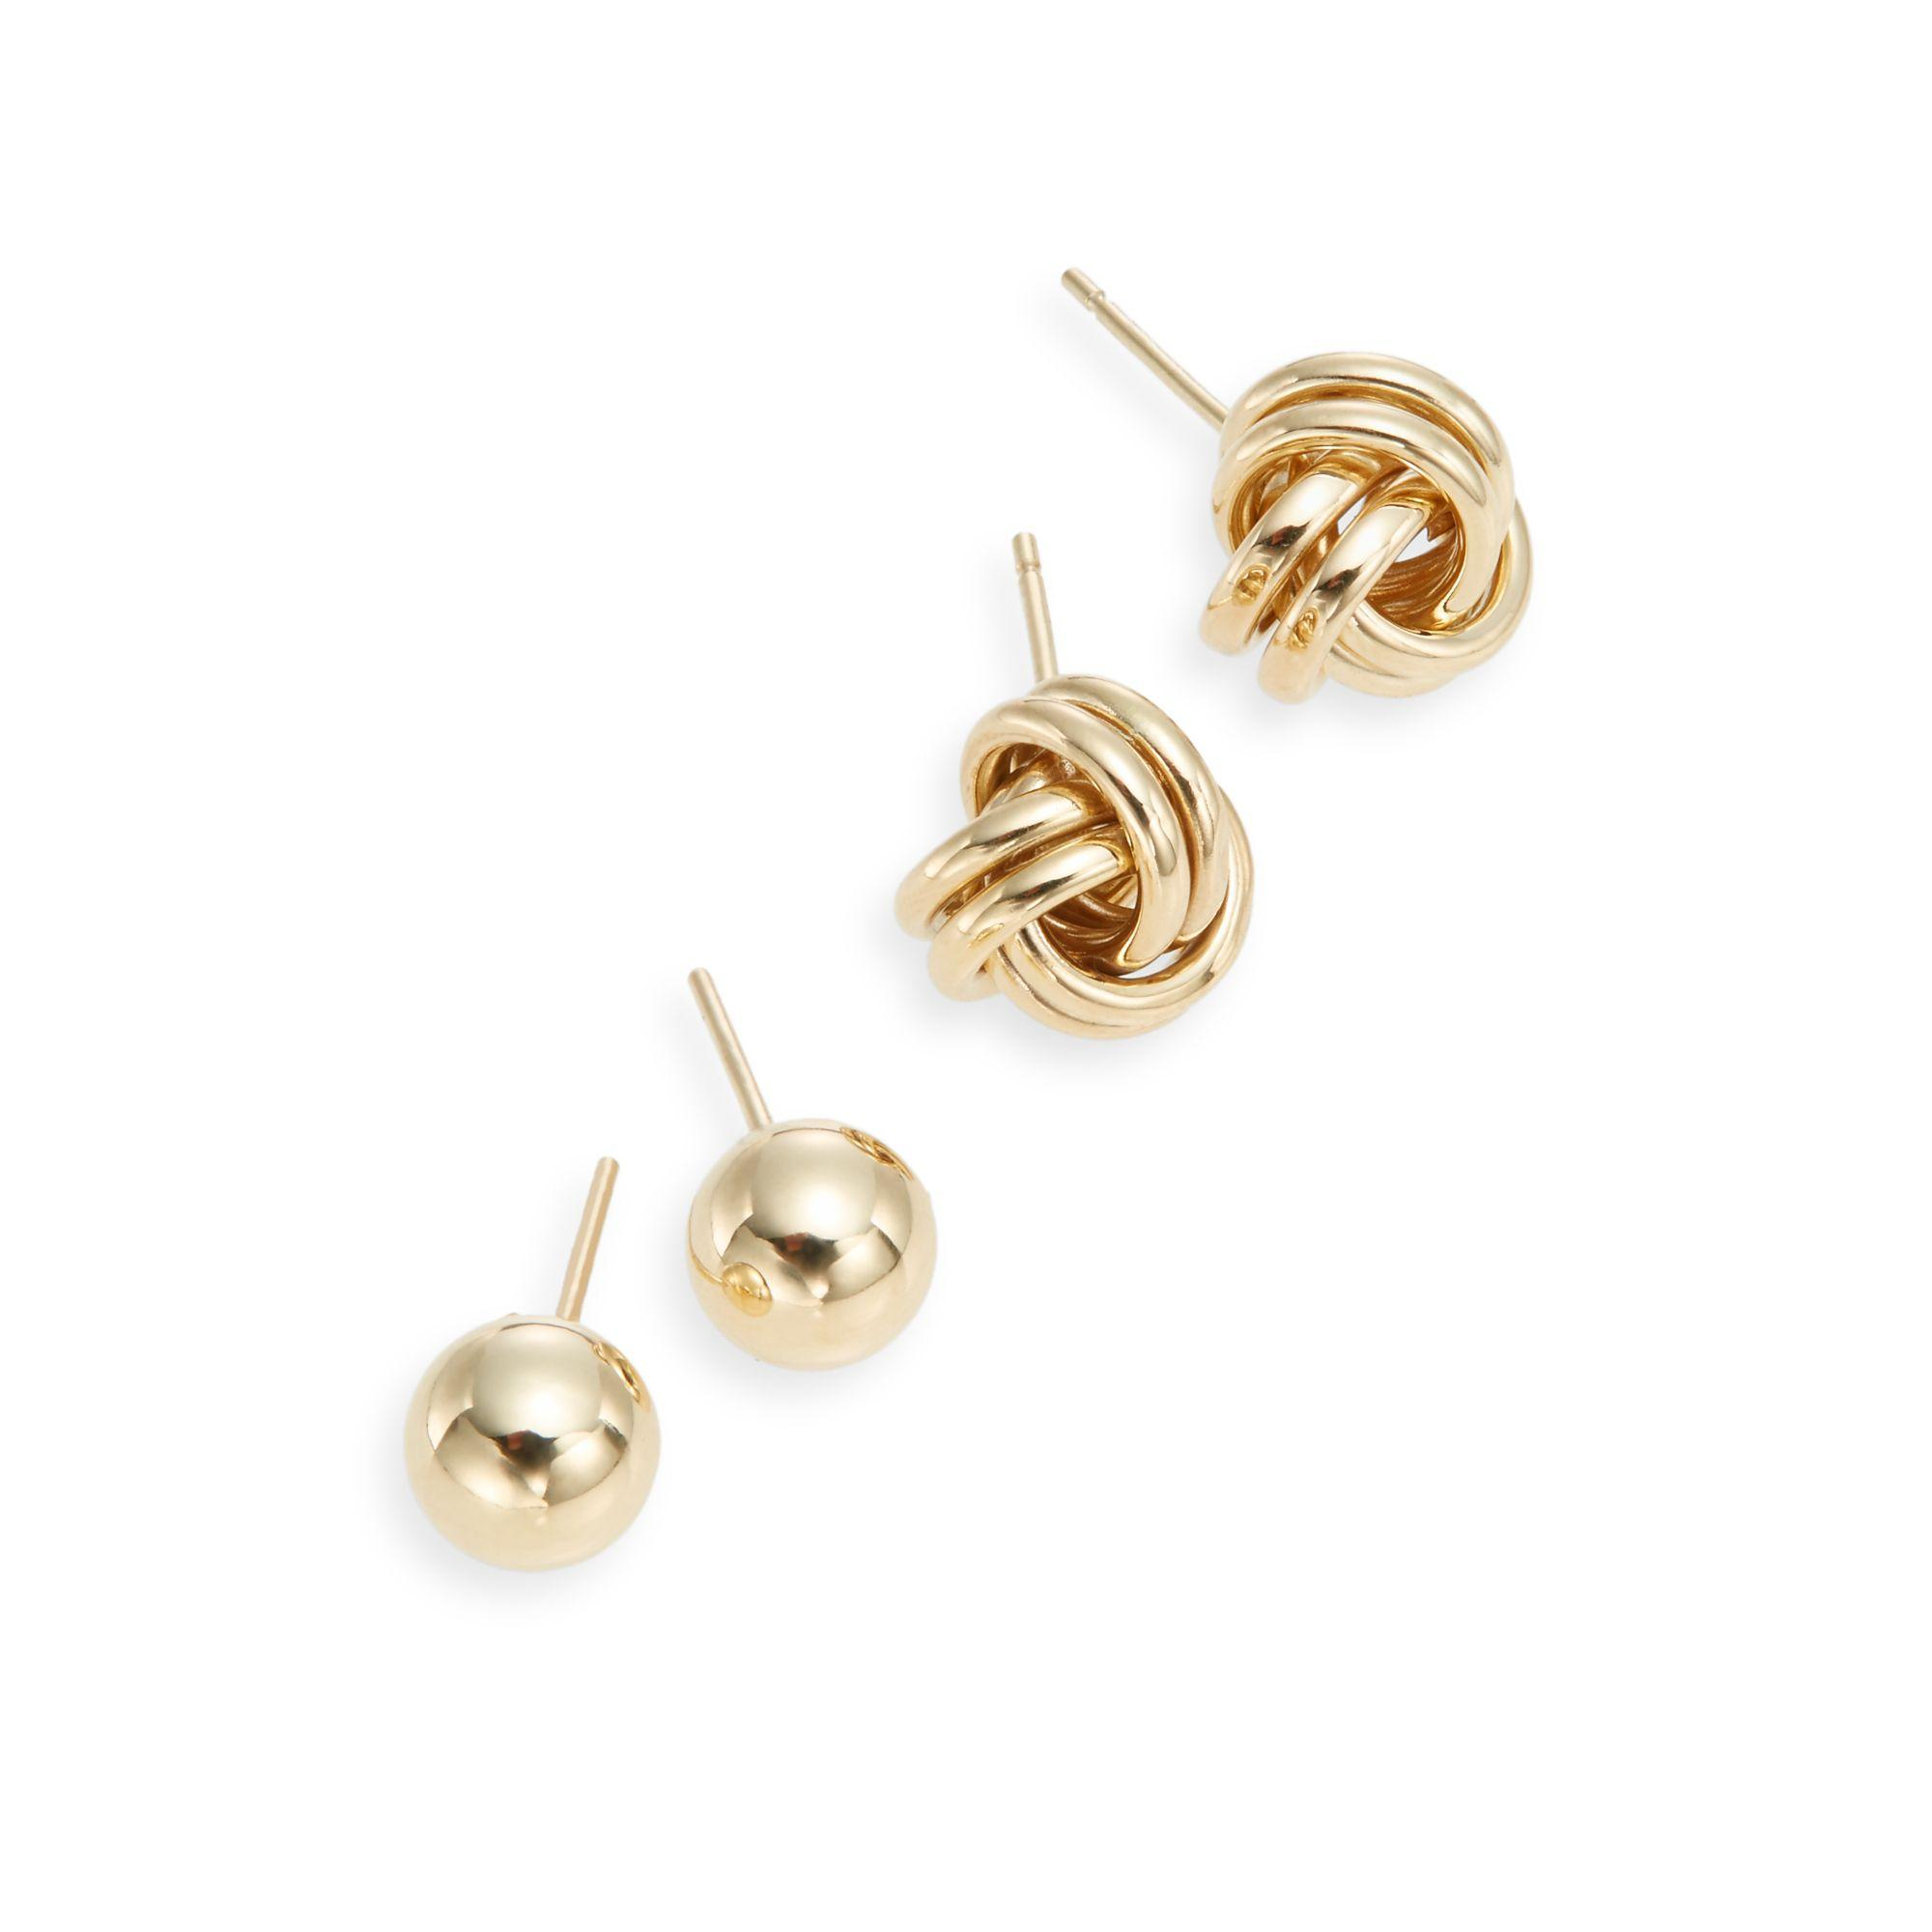 Saks Fifth Avenue 14k Yellow Gold Ball & Knot Stud Earring Set in Metallic